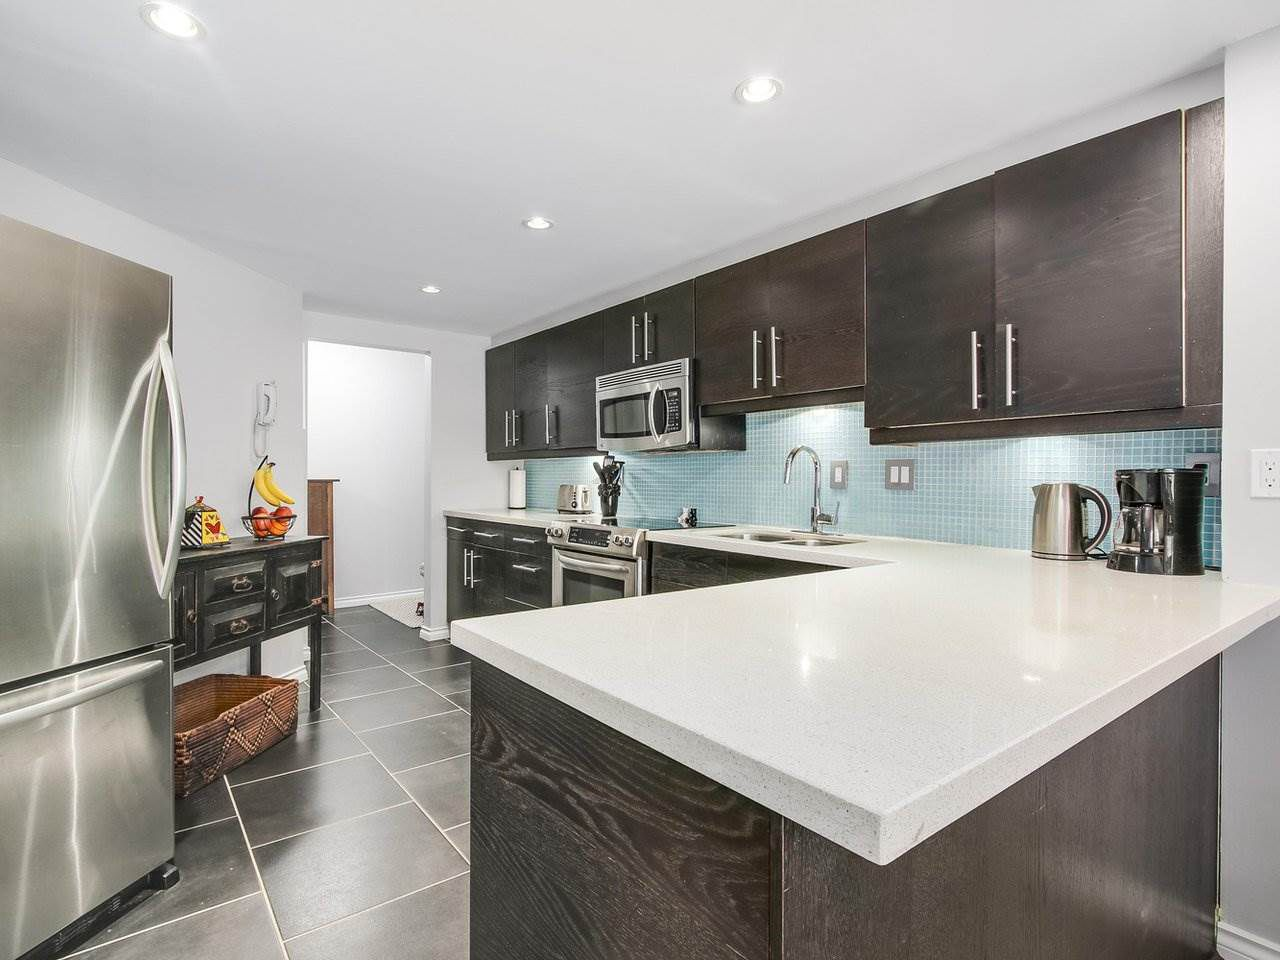 Main Photo: 206 1235 QUAYSIDE Drive in New Westminster: Quay Condo for sale : MLS®# R2204343